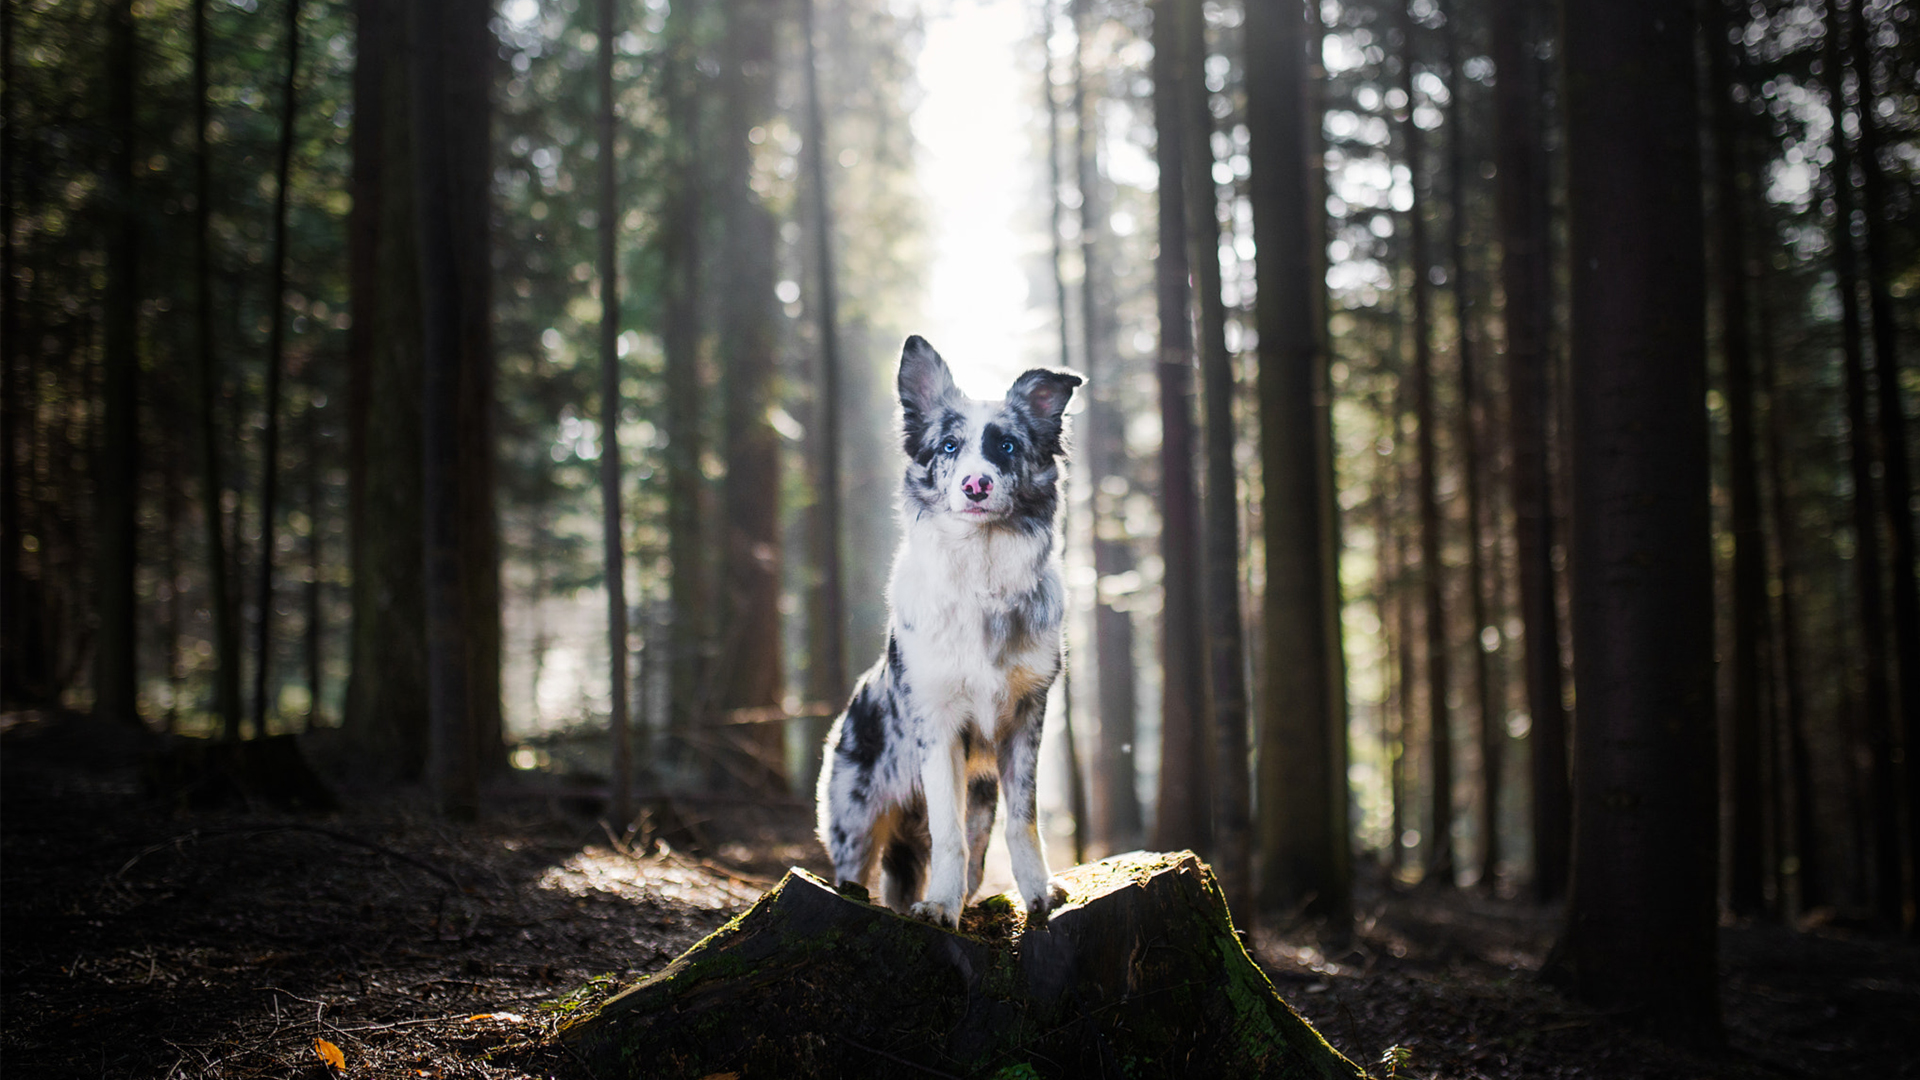 Expert tips to help you take the perfect dog photo